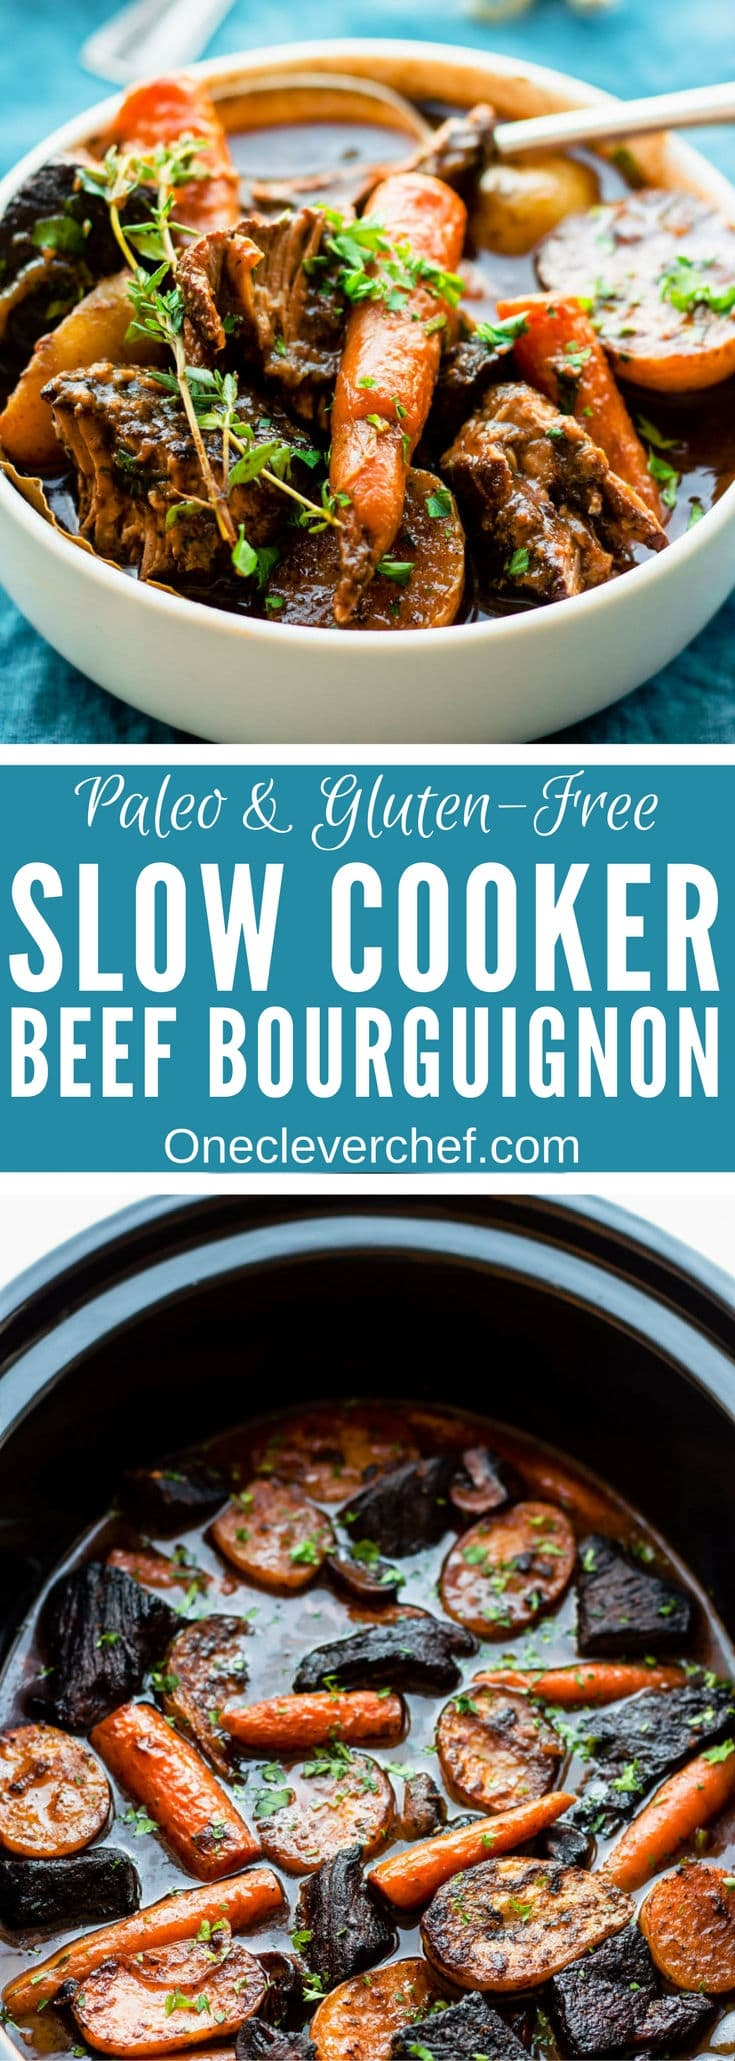 This slow cooker gluten-free beef bourguignon (or Beef Burgundy) recipe is the best I have ever tried. Cooking it in a slow cooker makes it super easy to prepare and extra tasty! My very simple version of this classic French stew is entirely gluten-free and can be made paleo by picking the right red wine for this particular diet.   www.onecleverchef.com #paleo #gluten-free #comfortfood #stew #beefbourguignon #slowcooker #healthy #weeknight #crockpot